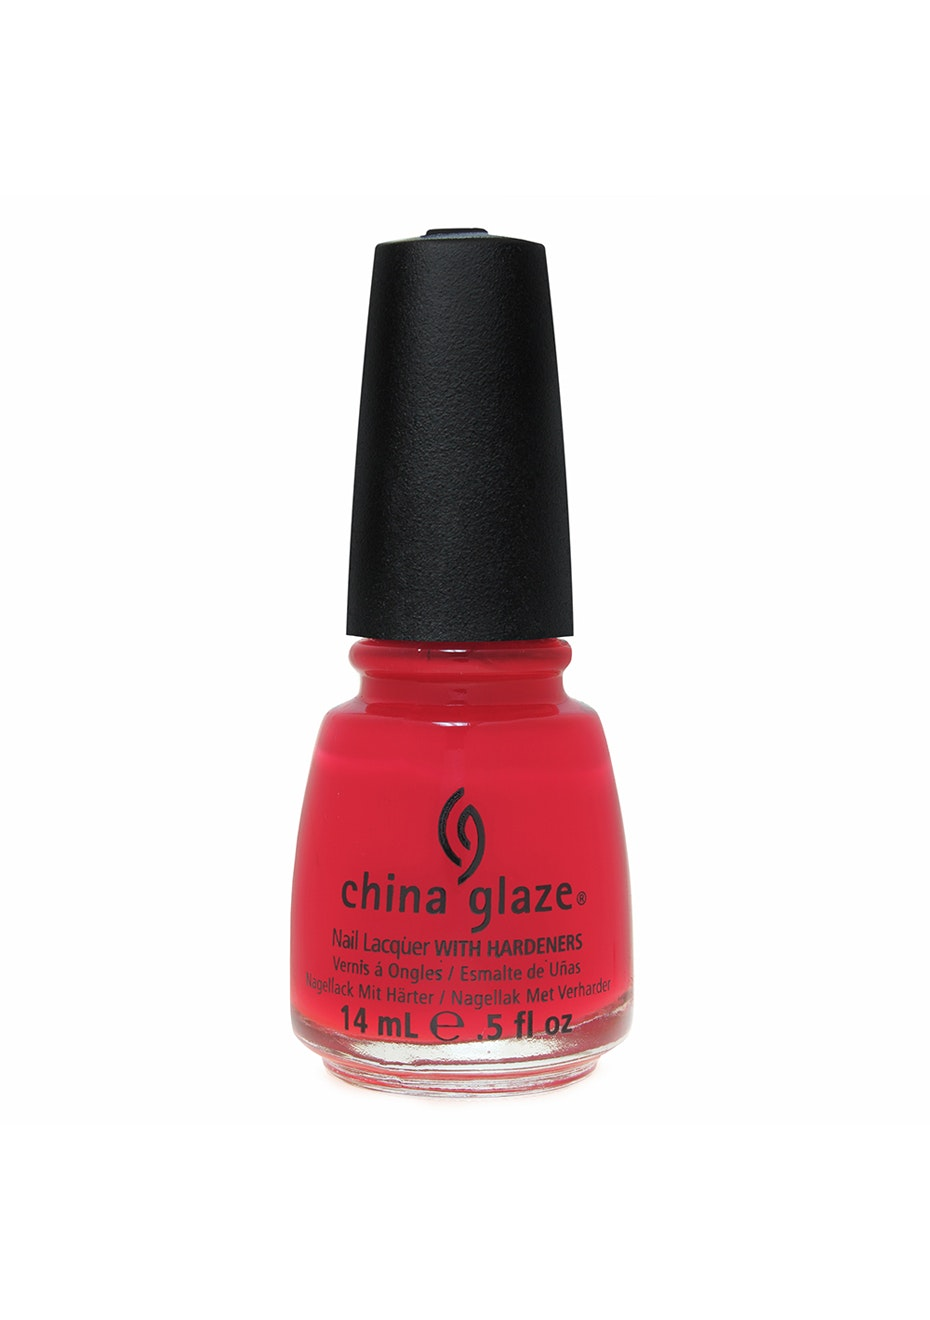 China Glaze #024 AZTEC ORANGE